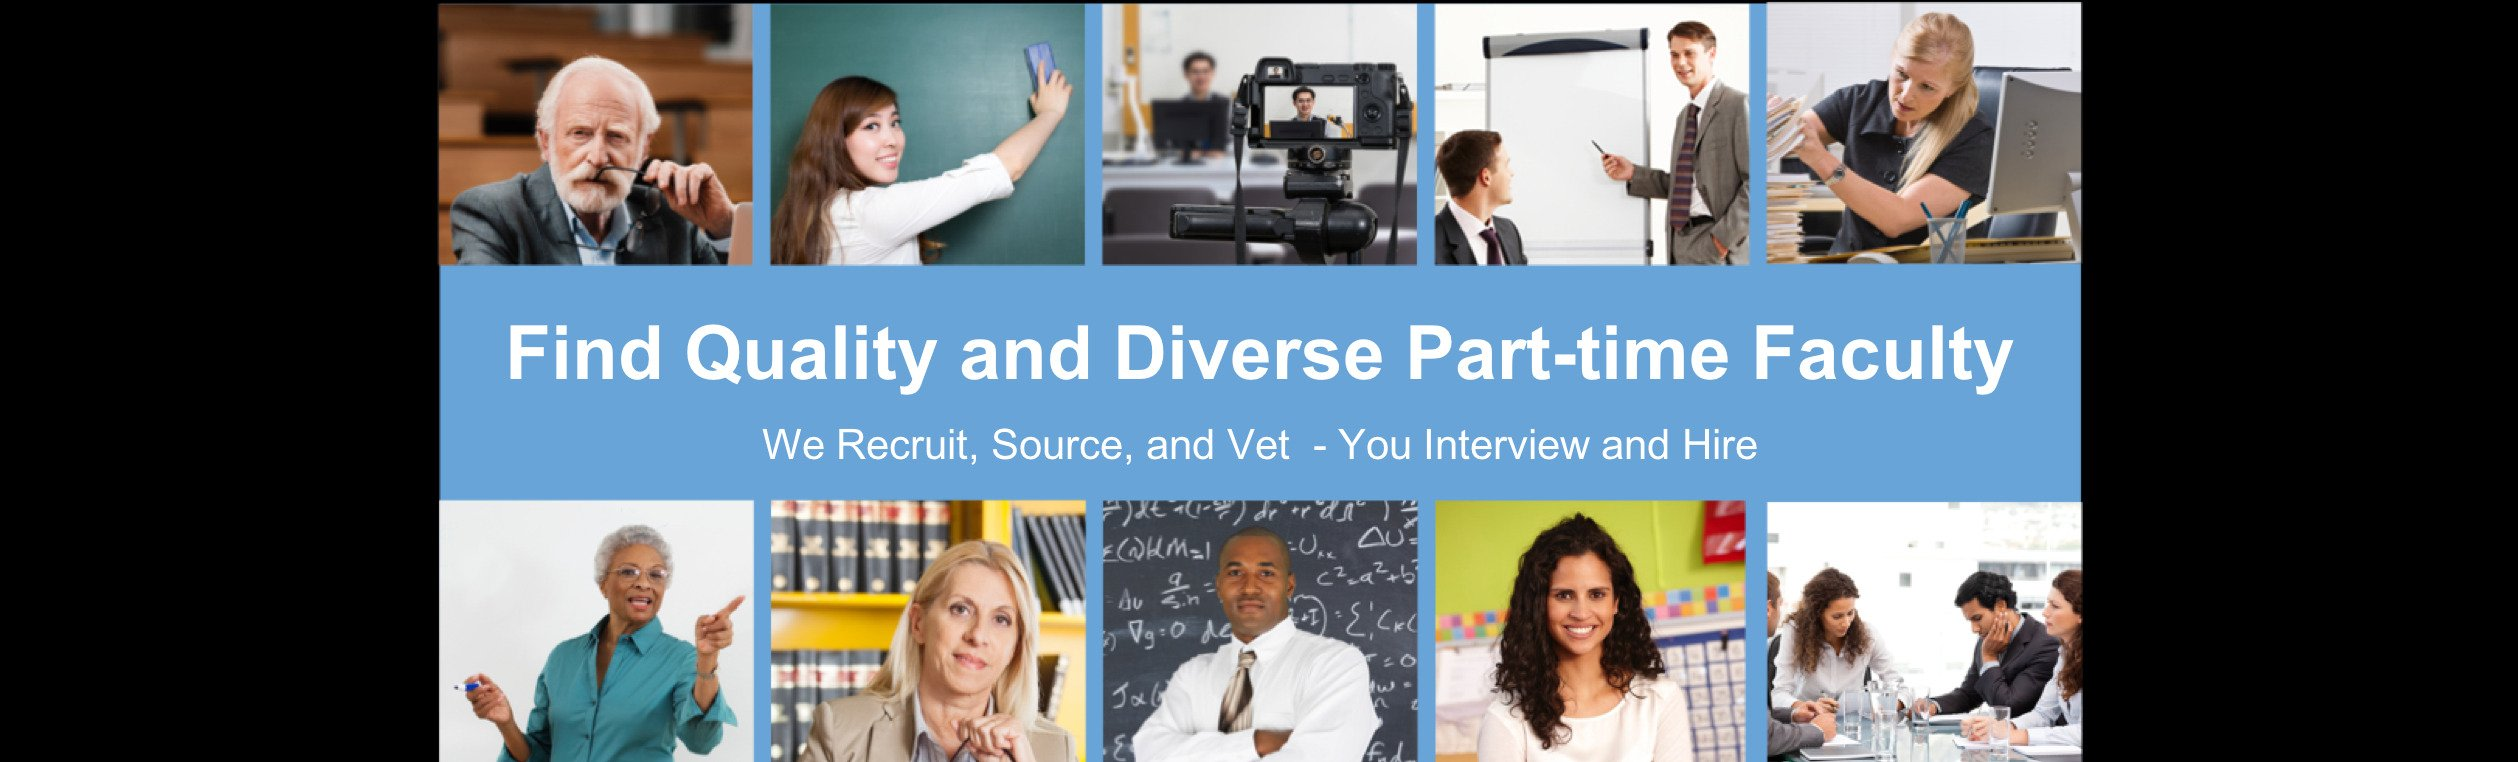 Find Quality and Diverse Part-Time Faculty